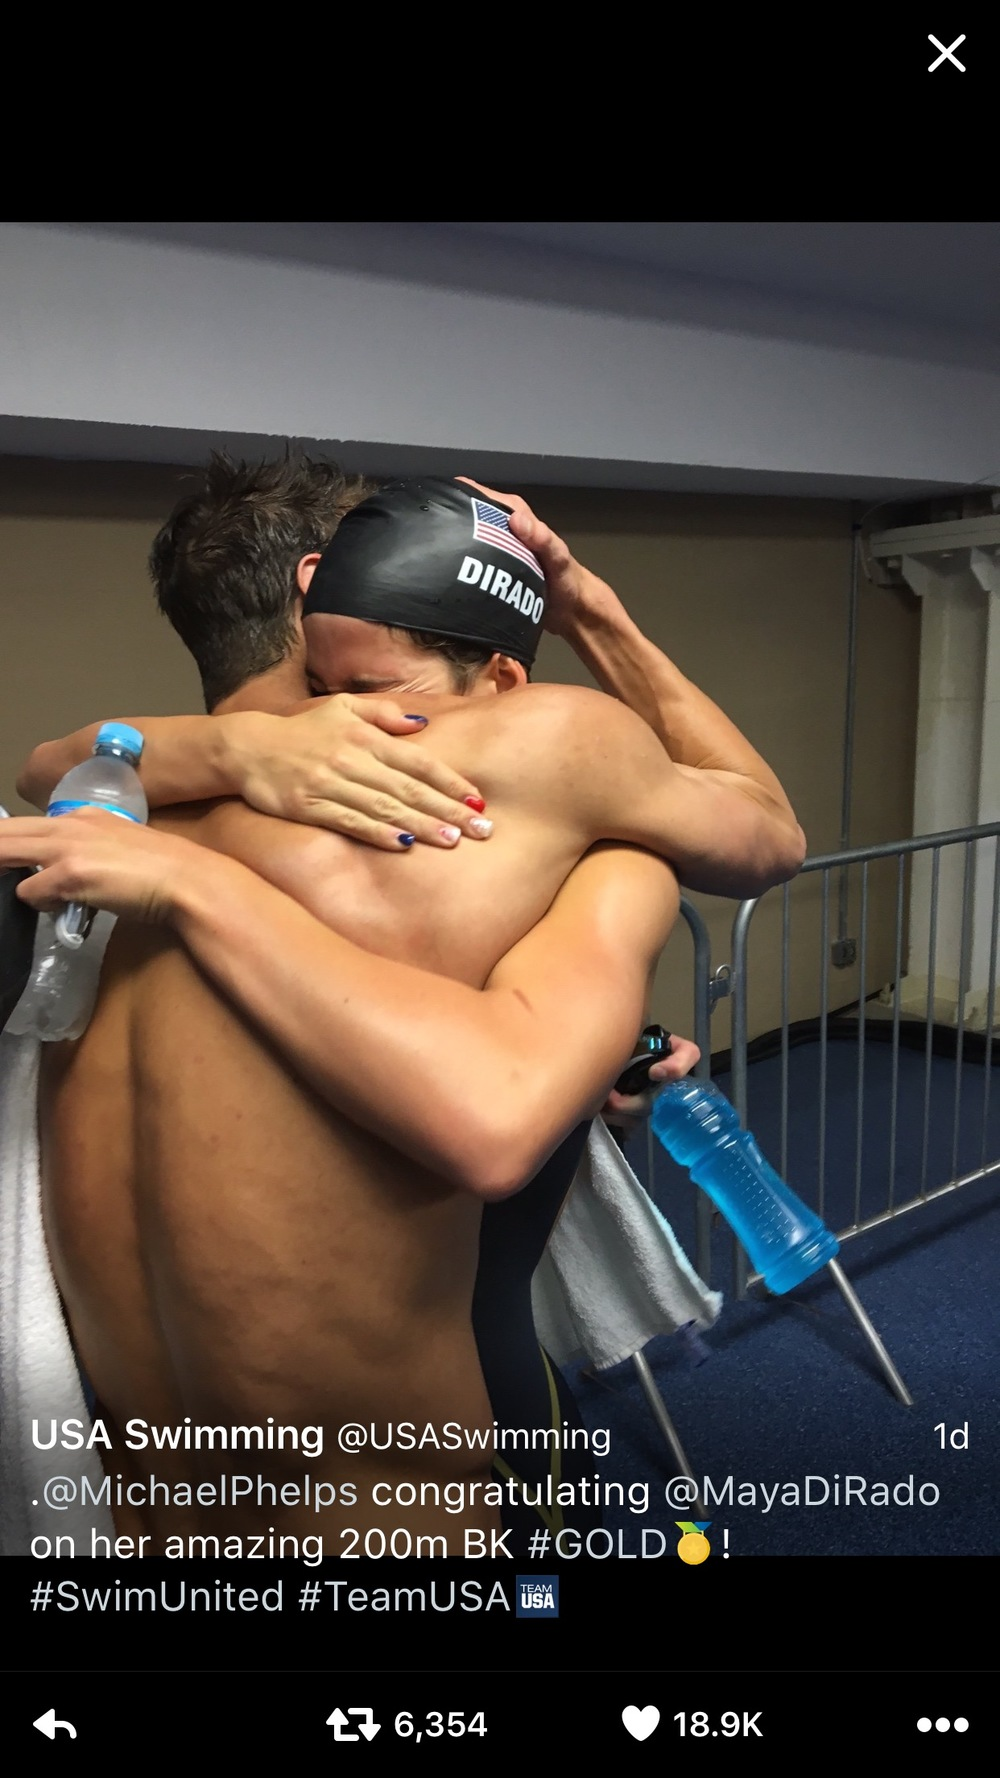 Michael Phelps congratulating Maya DiRado on her win! Ms. DiRado's nails reveal a neat nail trend brought to us by the 2016 Olympic Games. Photo courtesy of USA Swimming's Twitter Feed.